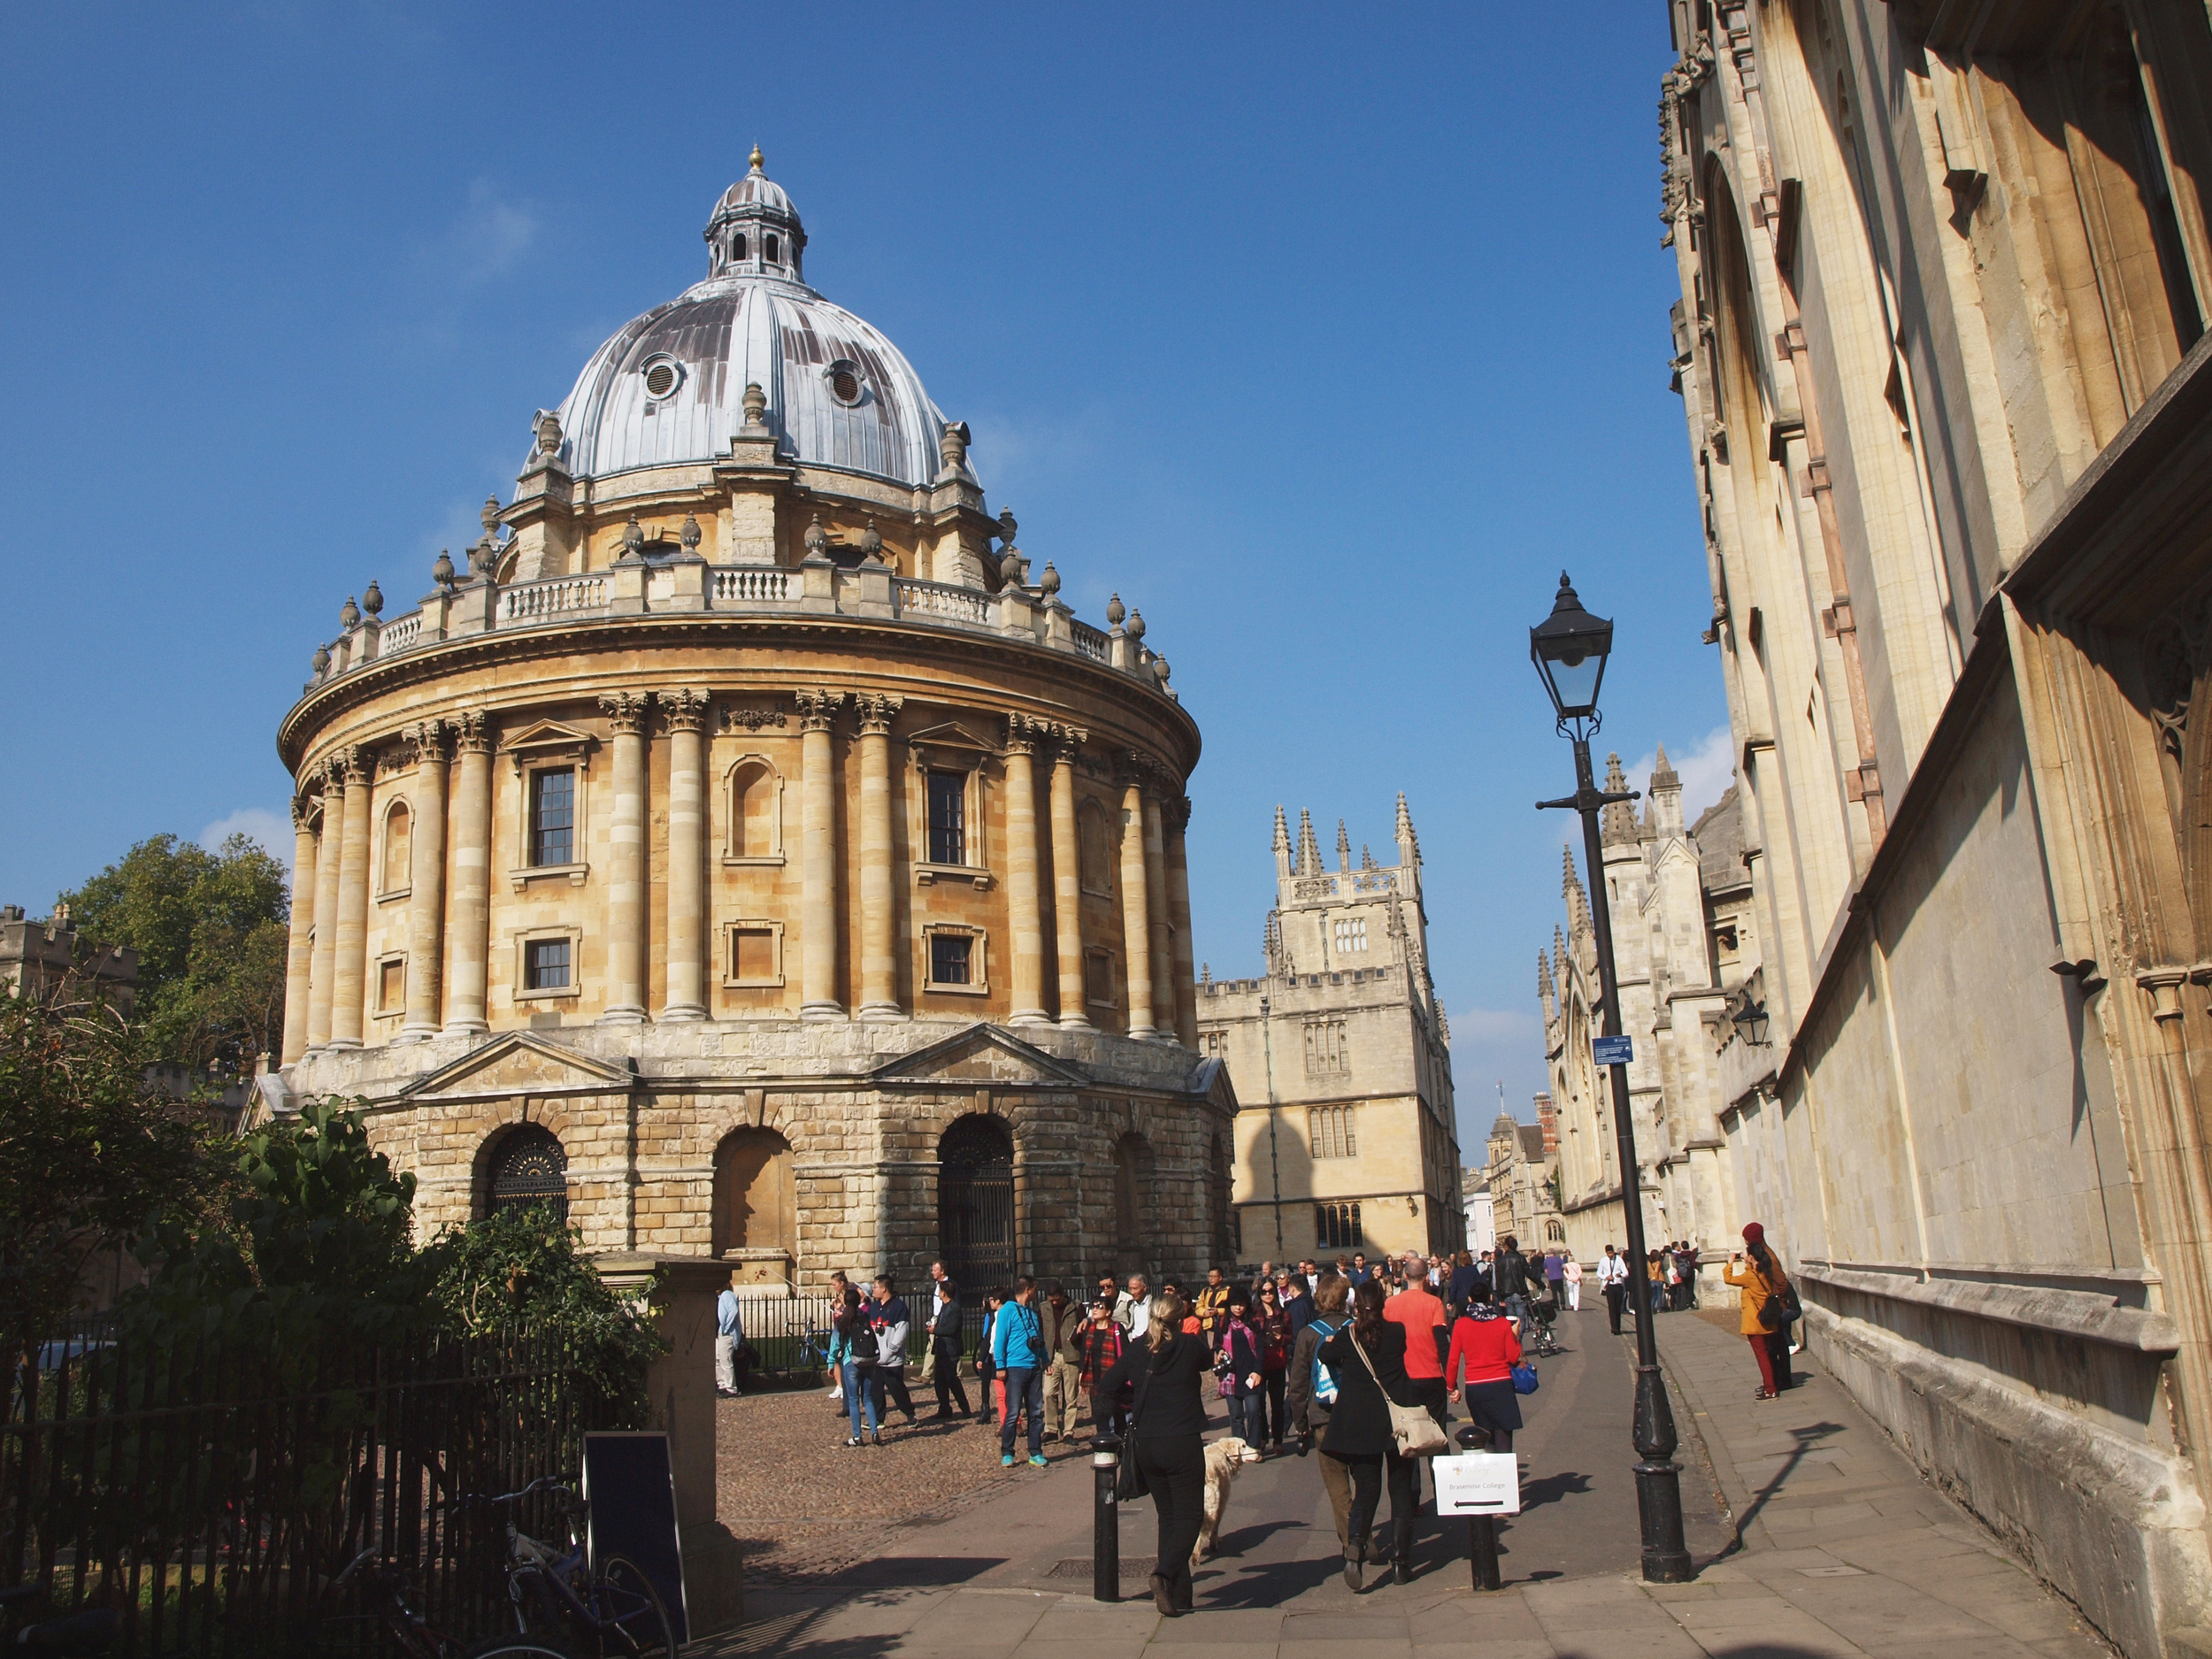 Near the church of oxford- There was a white tour guide speaking in Japanese here